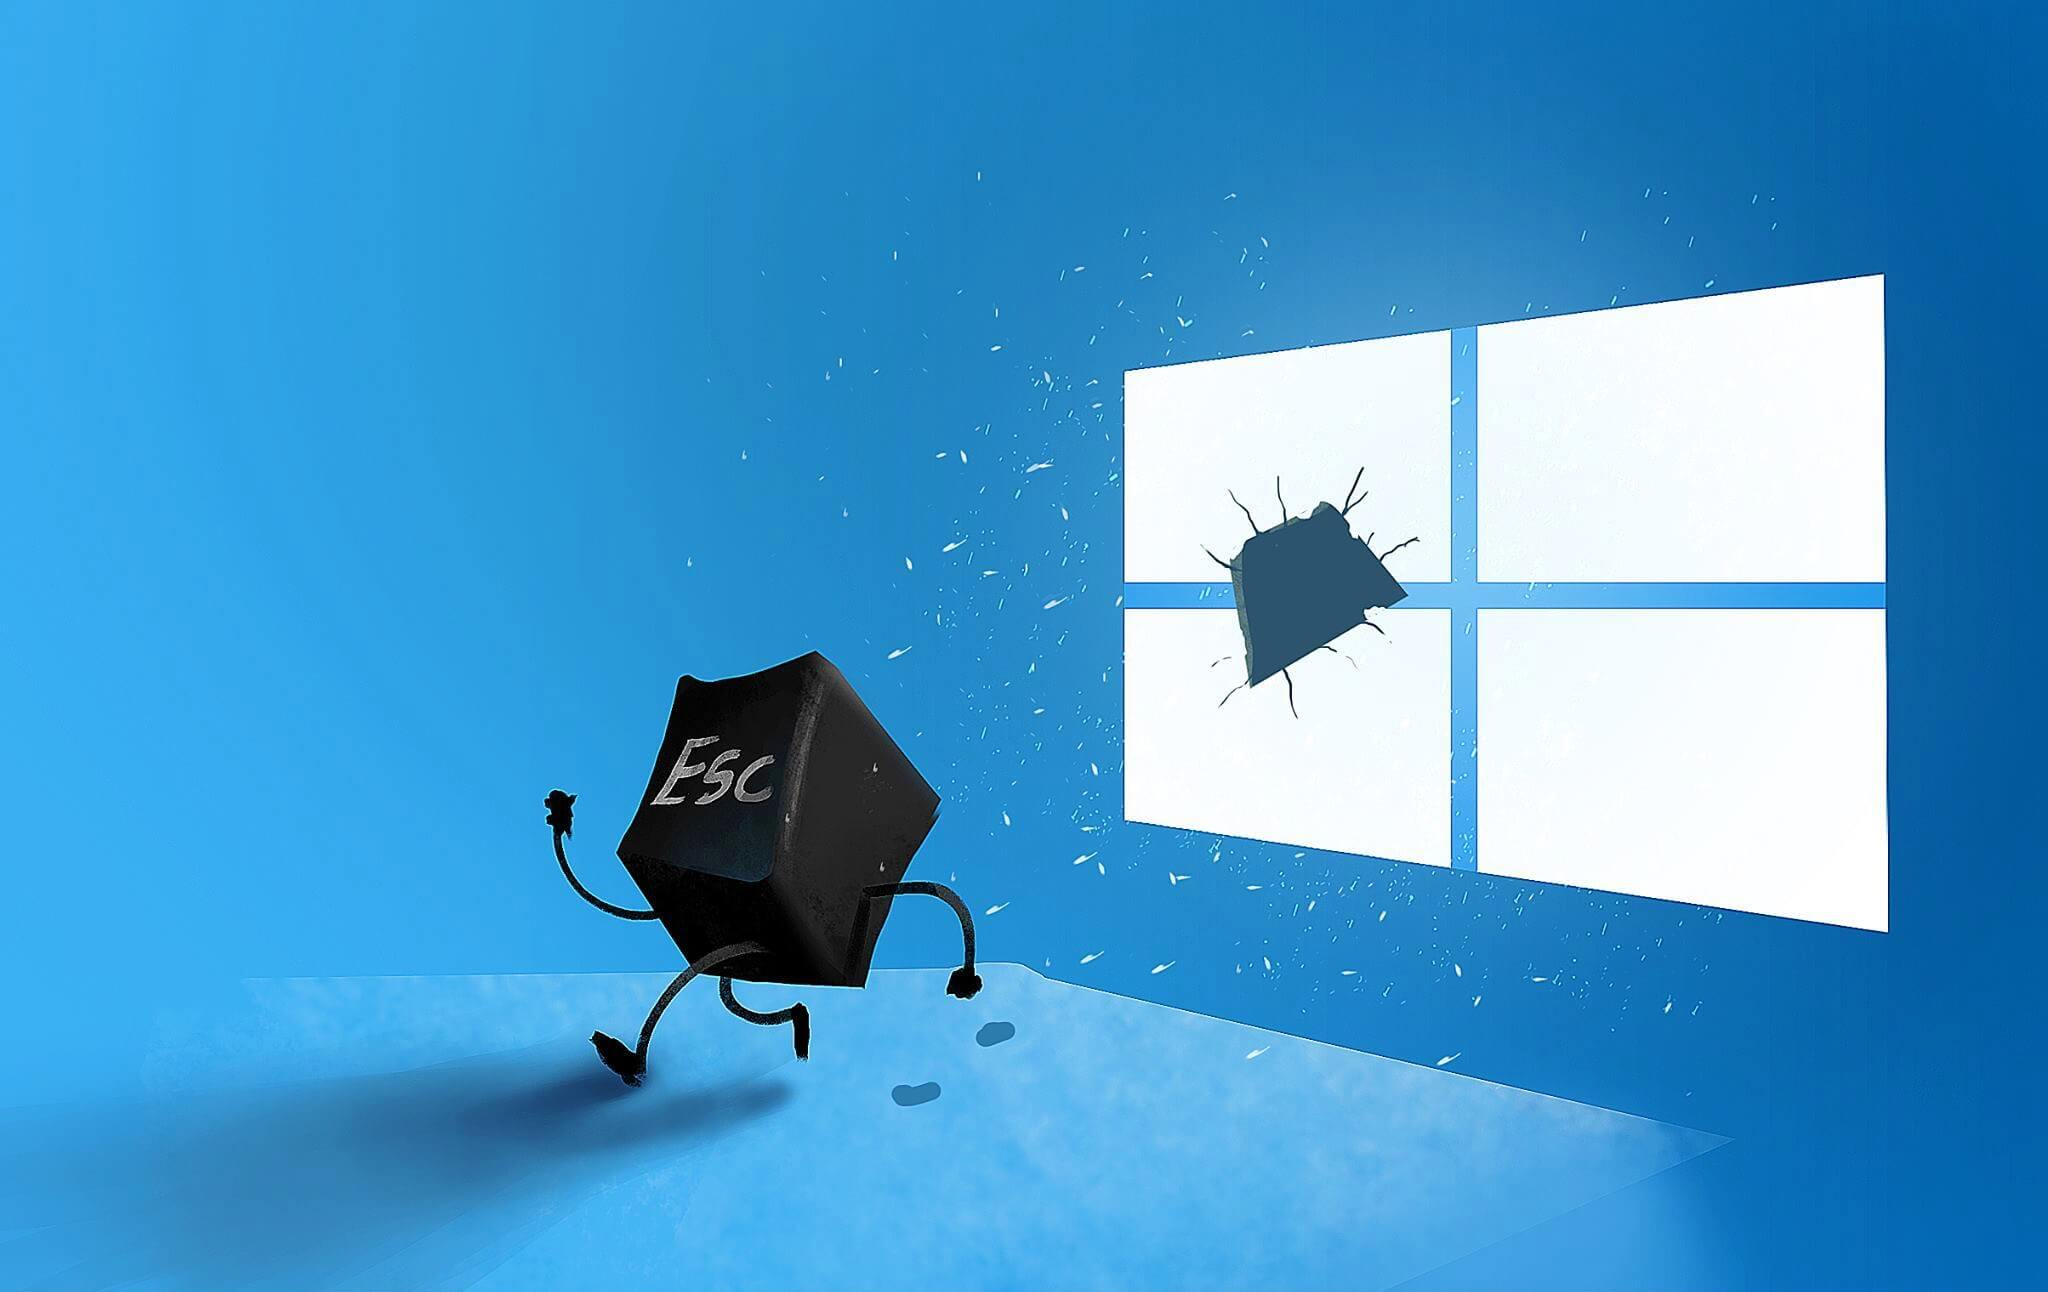 Get Rid of Windows 10 Ads, Office Offers and Other ...